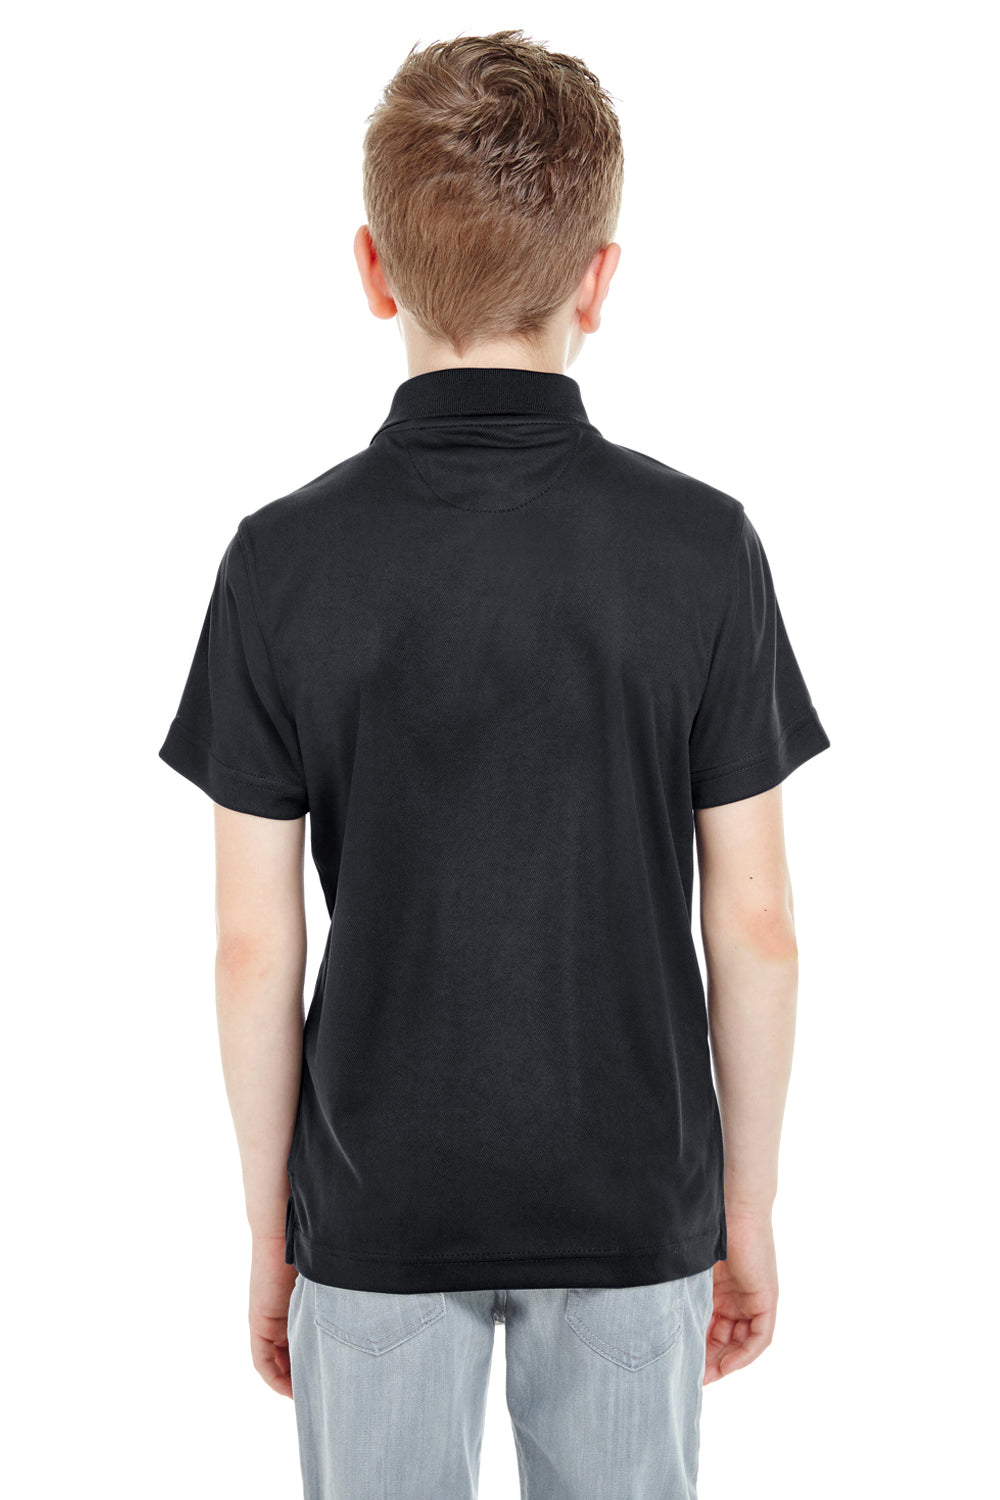 UltraClub 8210Y Youth Cool /& Dry Polo